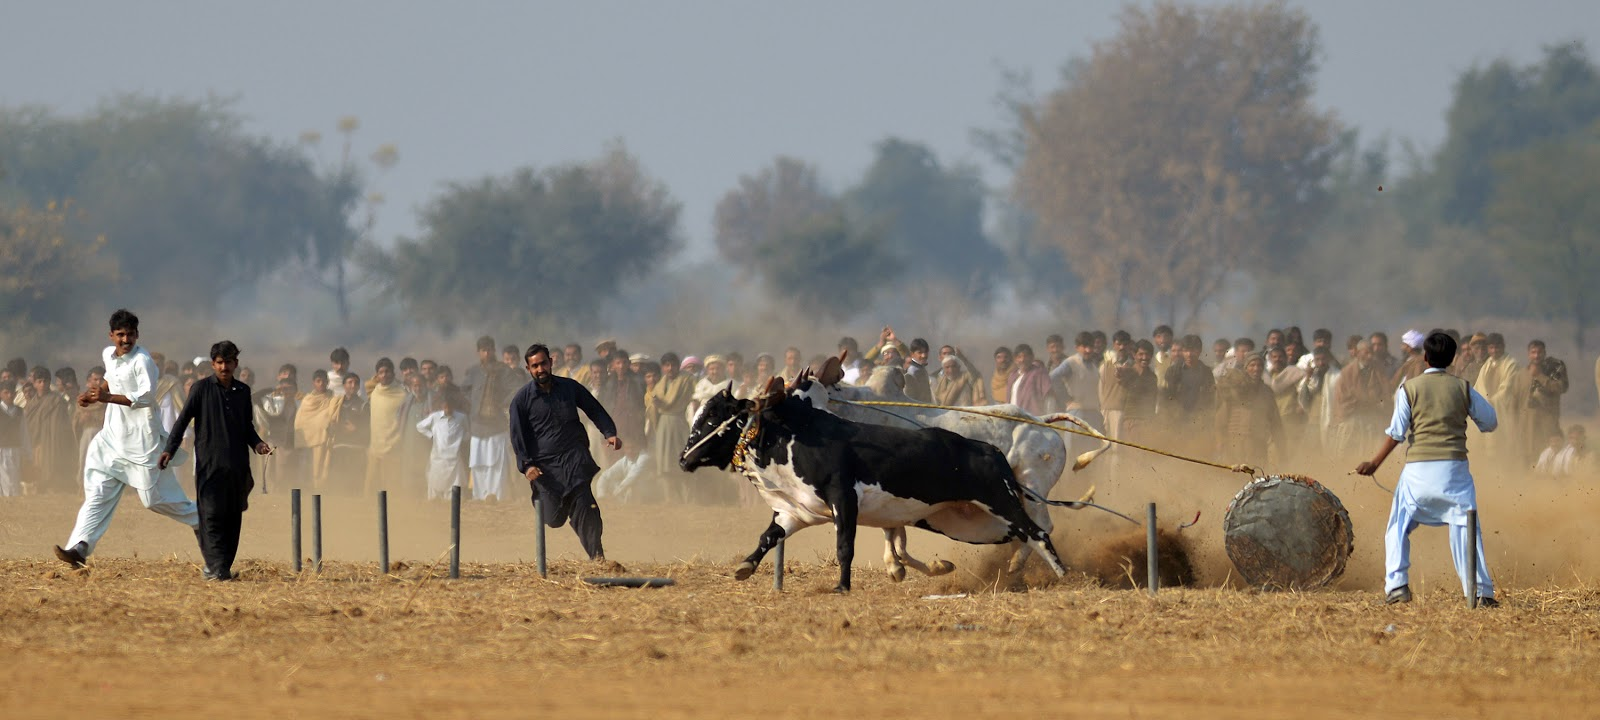 Traditional Bull Race in Khunda, Pakistan in HD Pictures